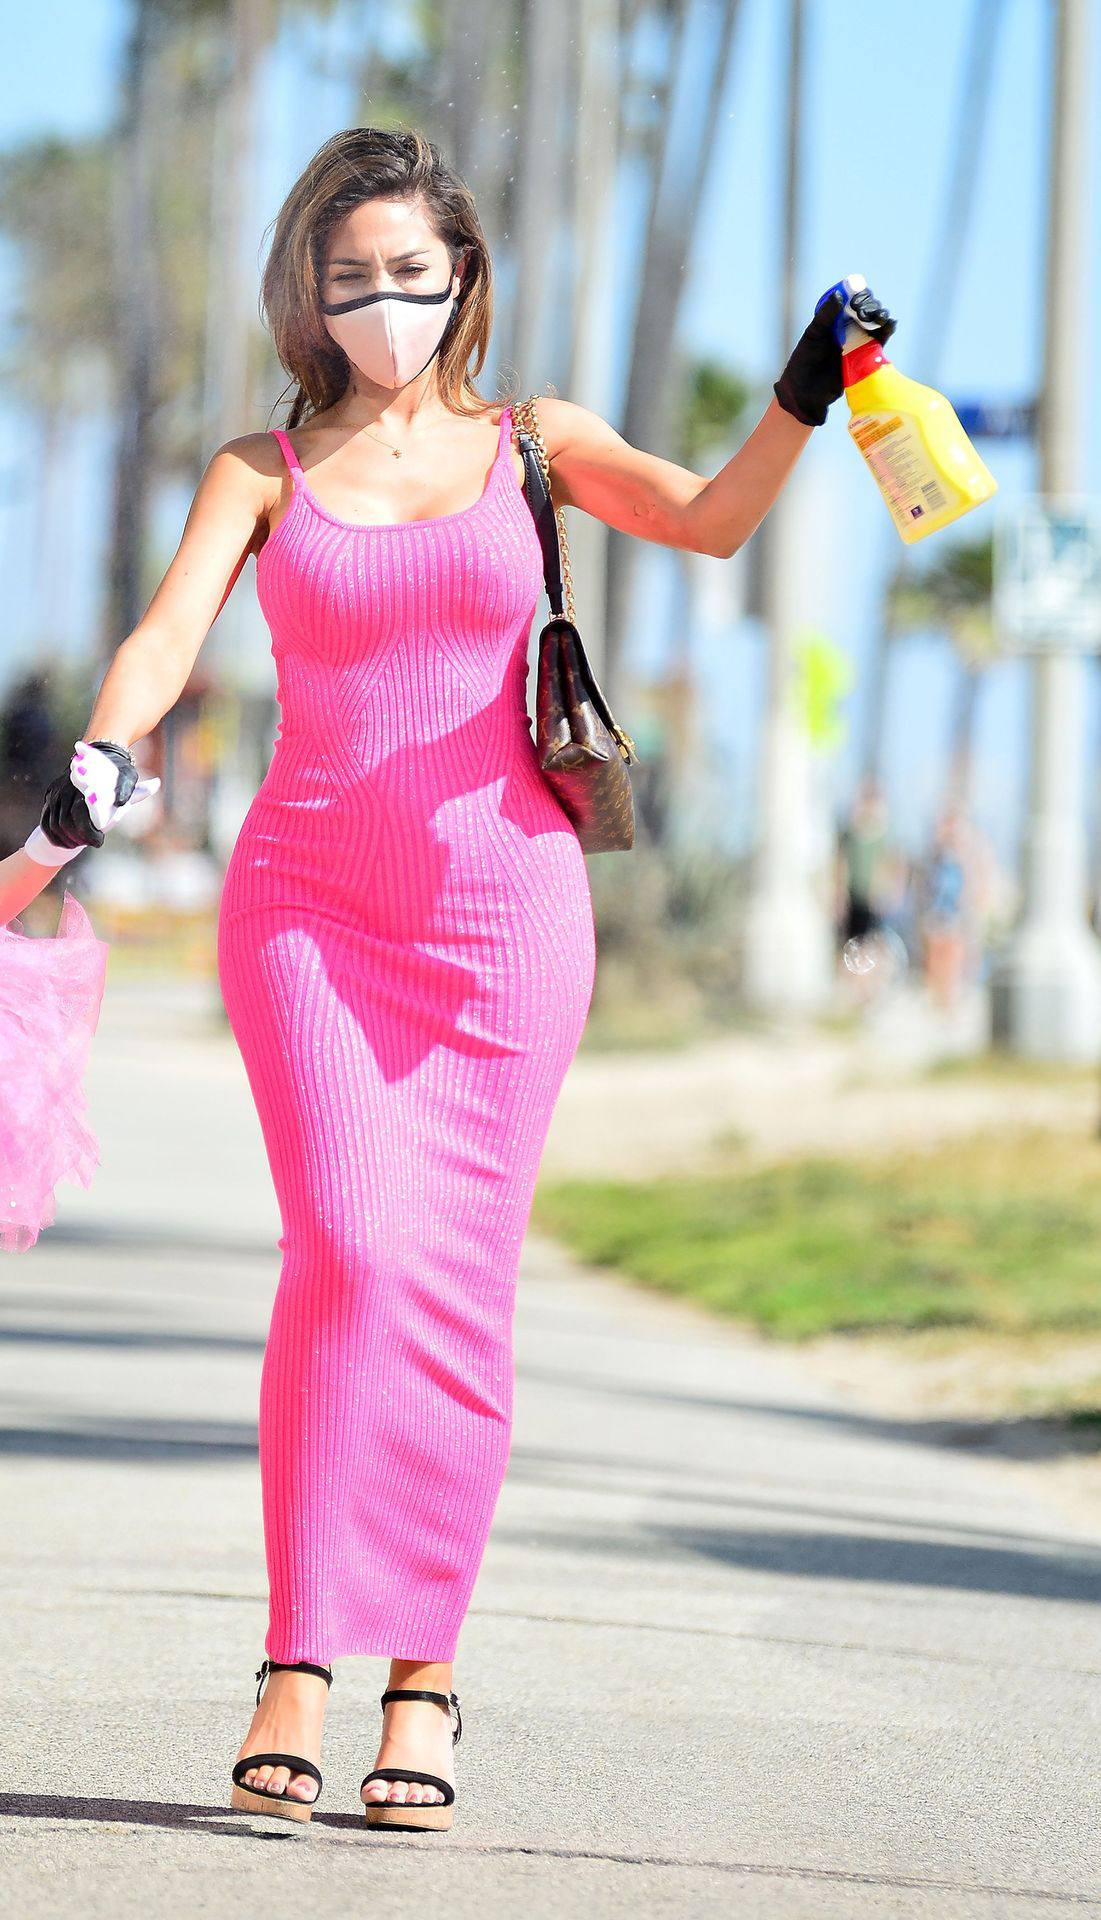 Farrah Abraham – Sexy Curvy Body In A Pink Dress Out In Los Angeles 0020